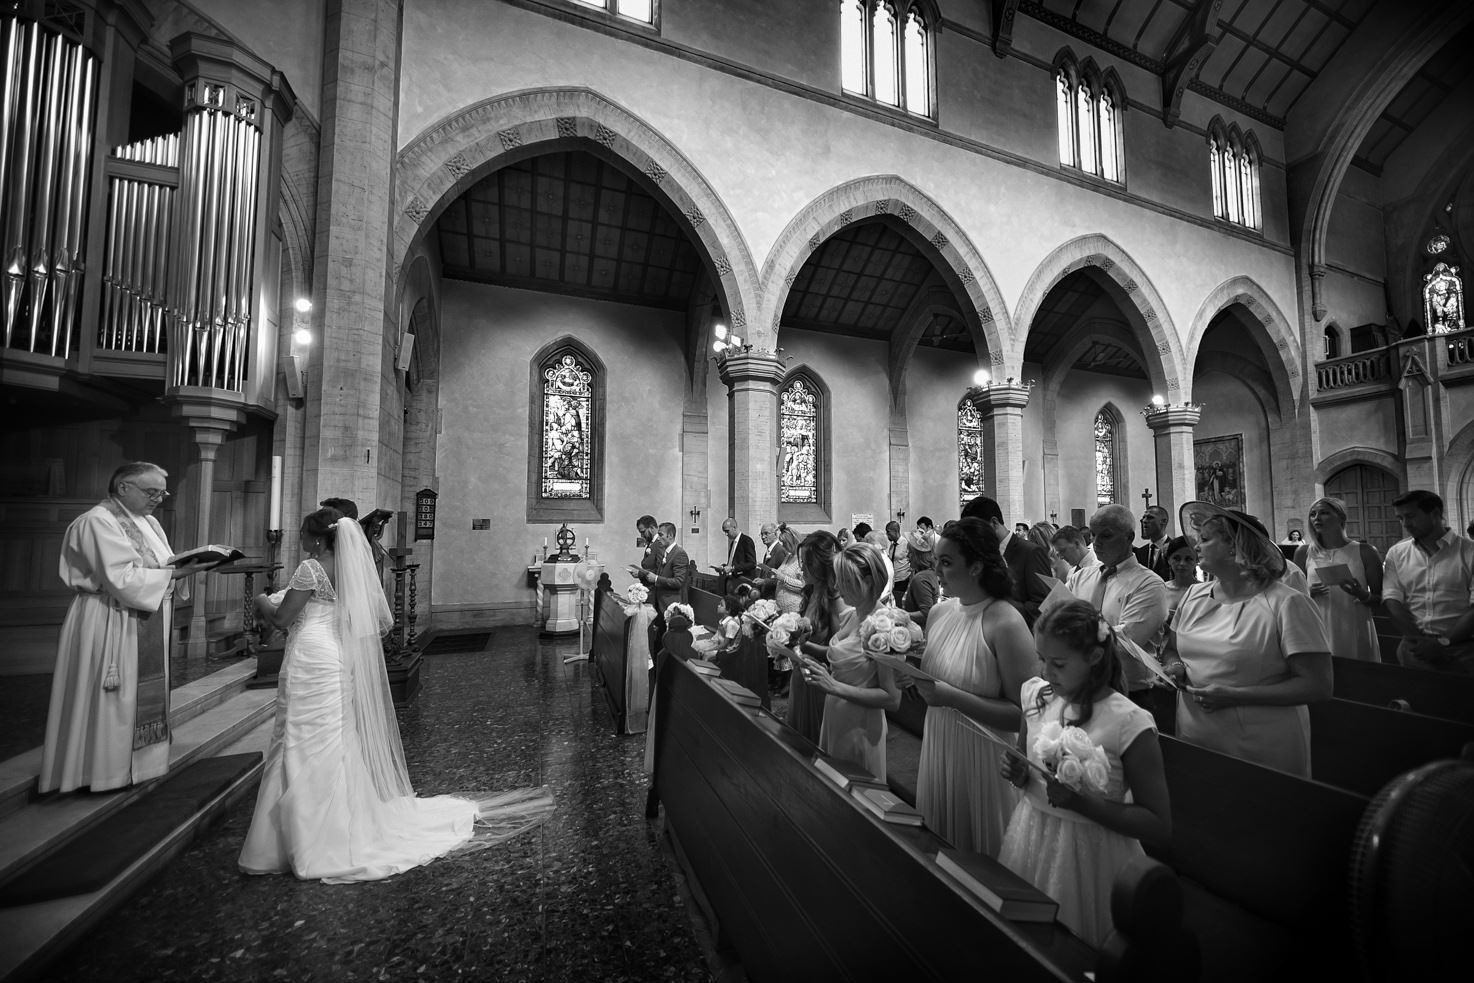 Protestant wedding in Florence